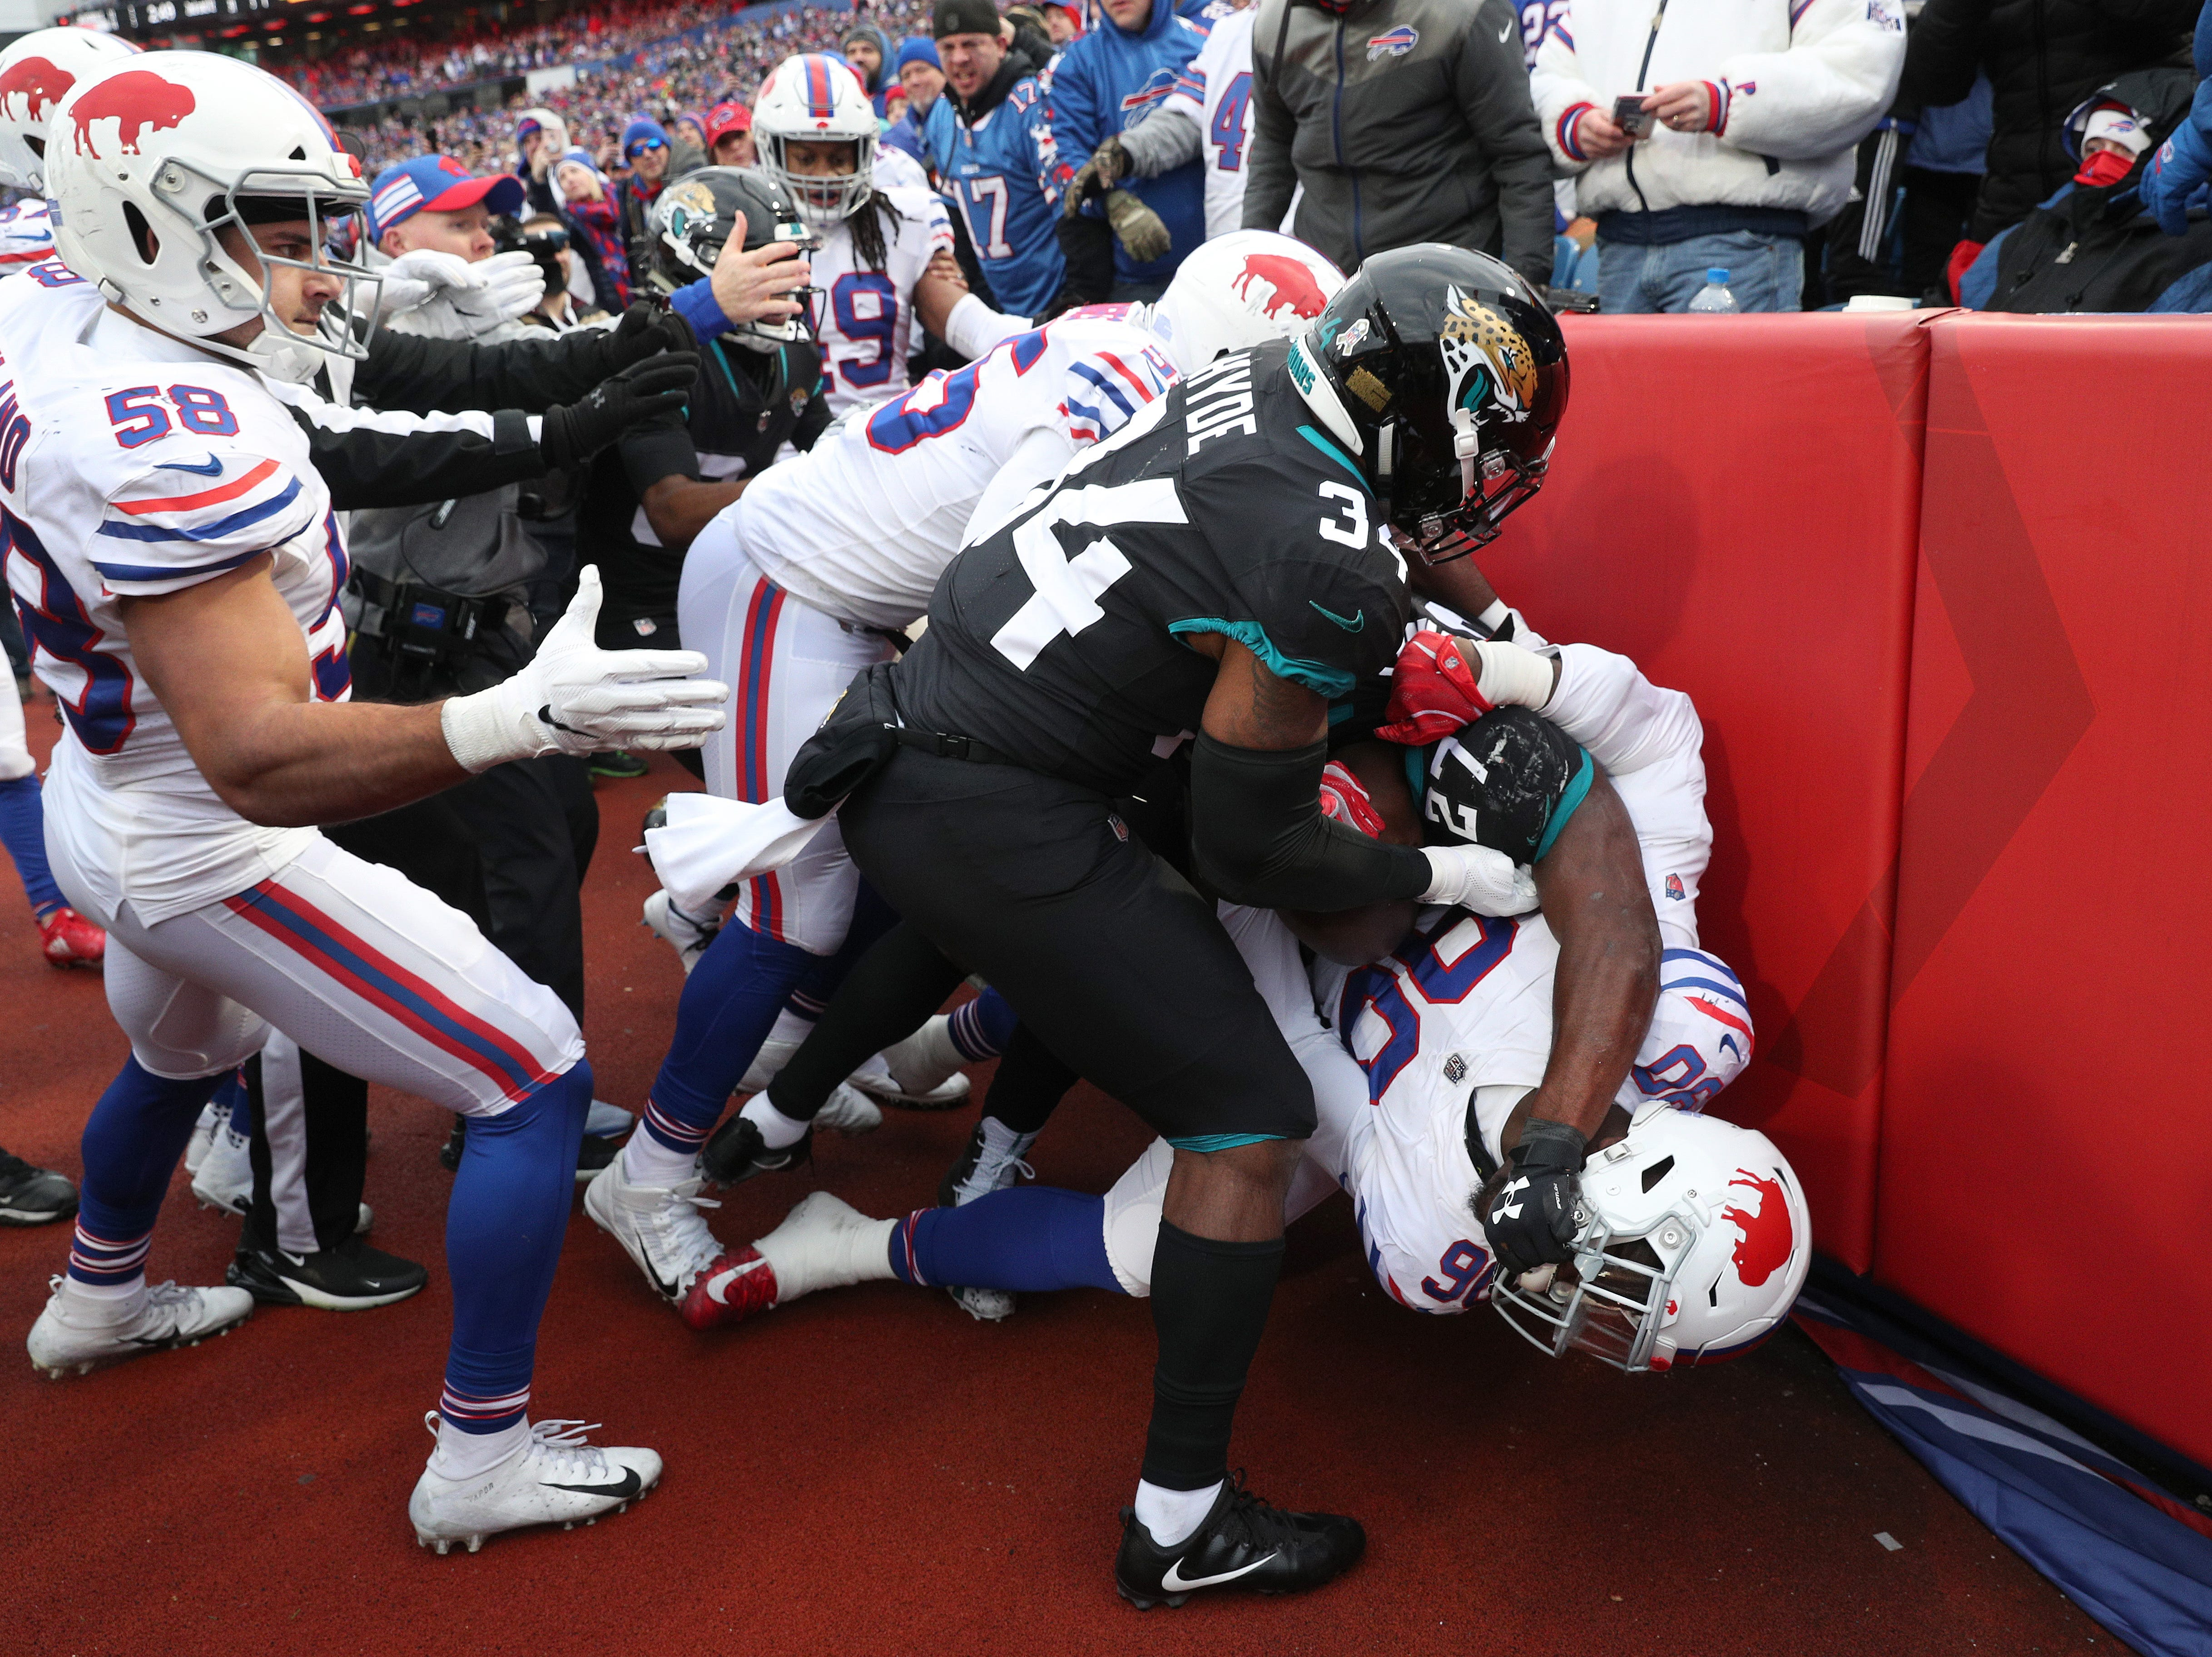 Bills Shaq Lawson fights with Jacksonville's Leonard Fournette.  Both players were ejected during the fight.